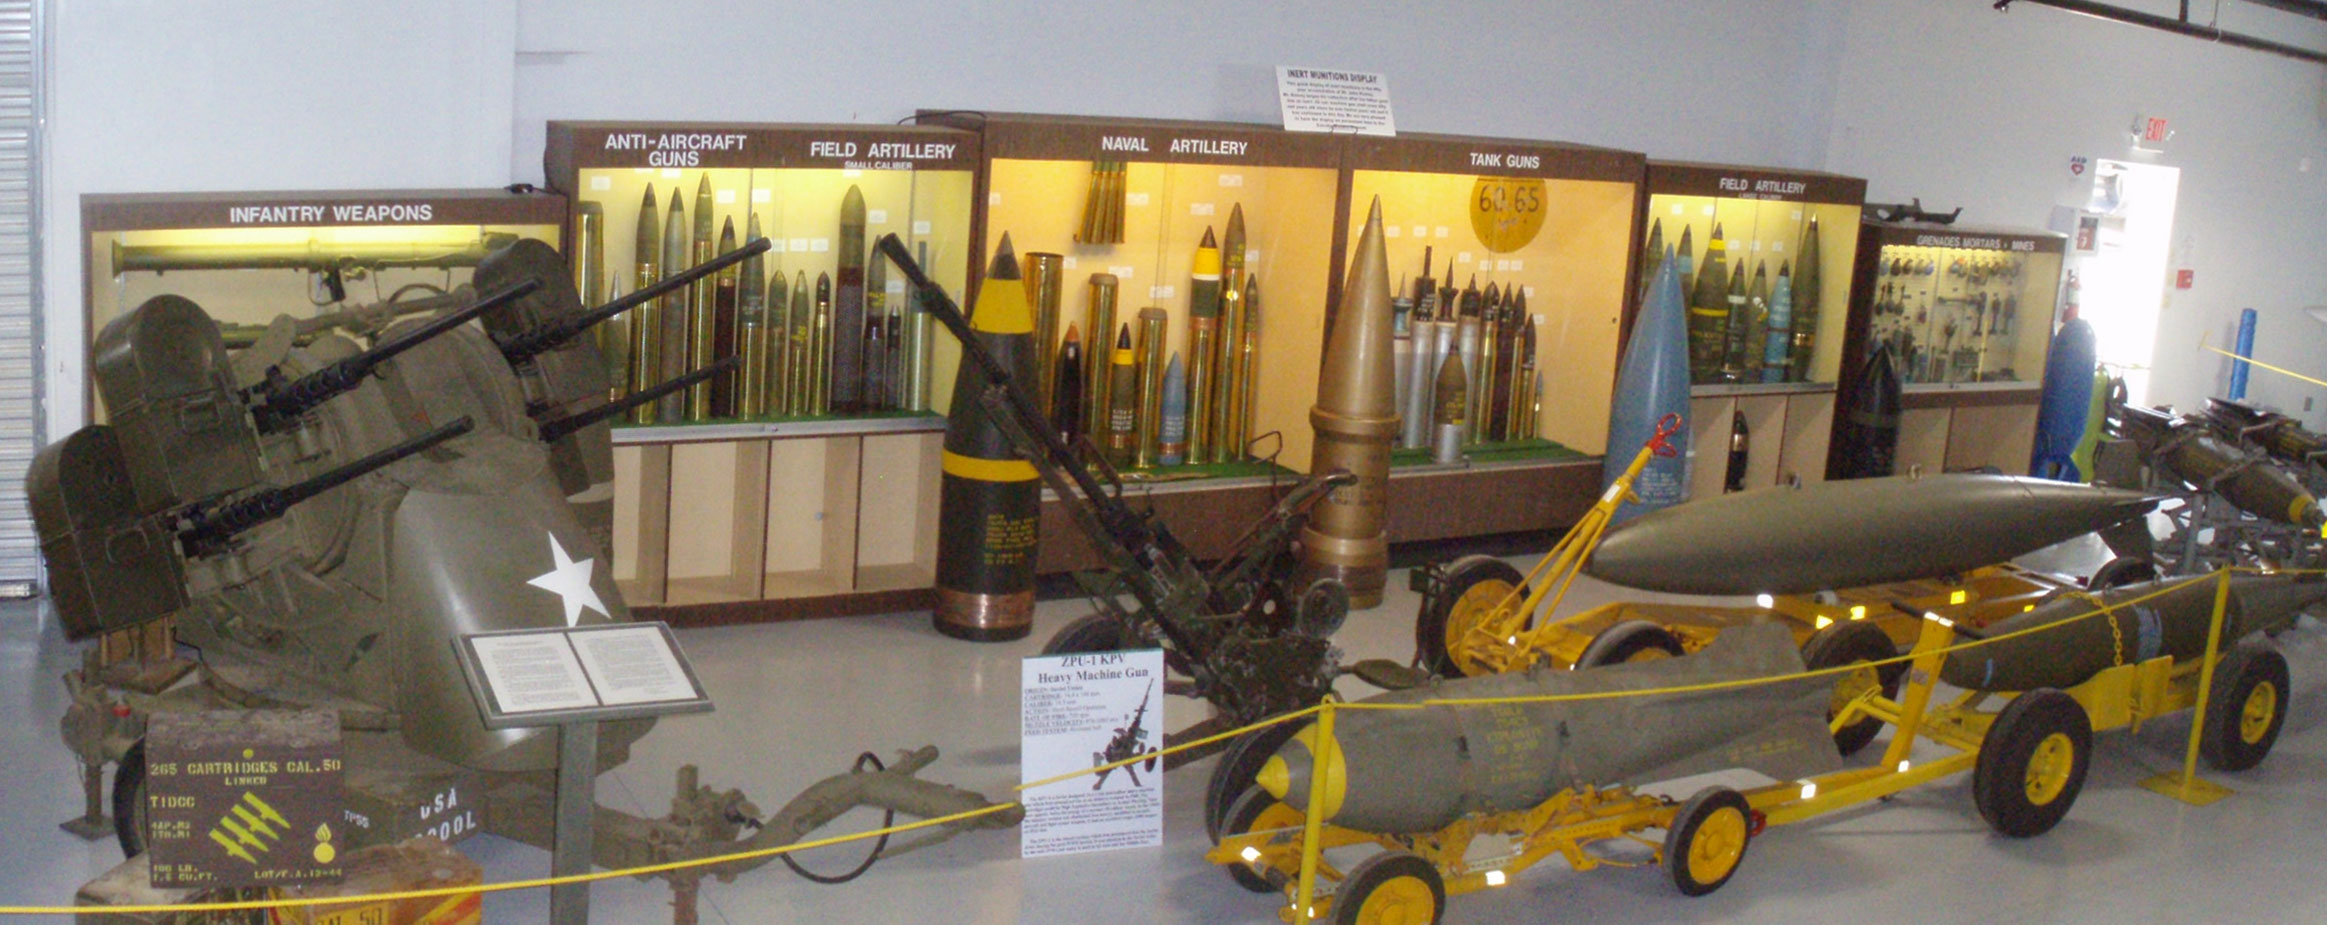 Munitions Display